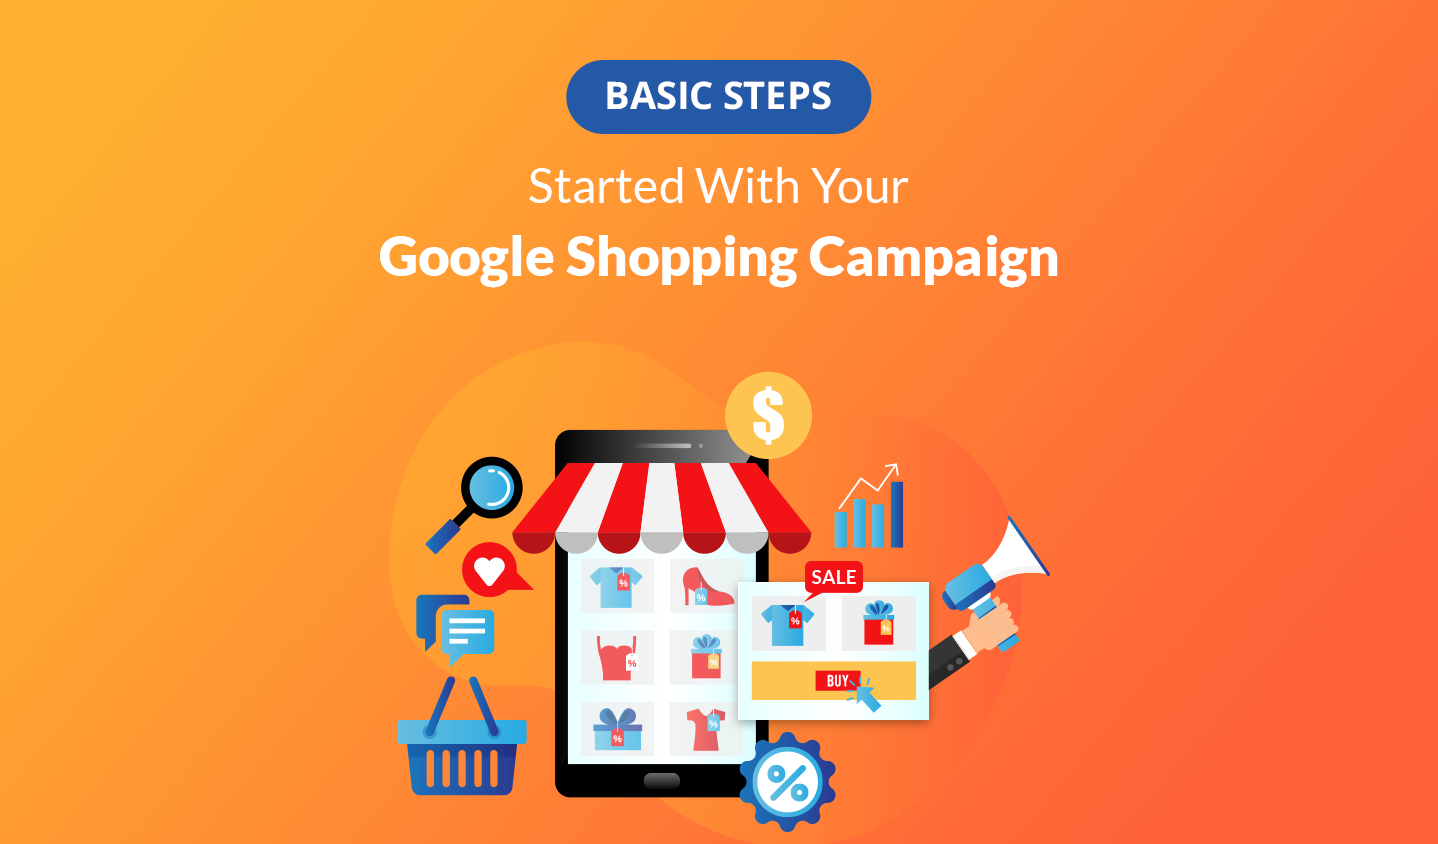 7 Basic Steps To Get Started With Your Google Shopping Campaign